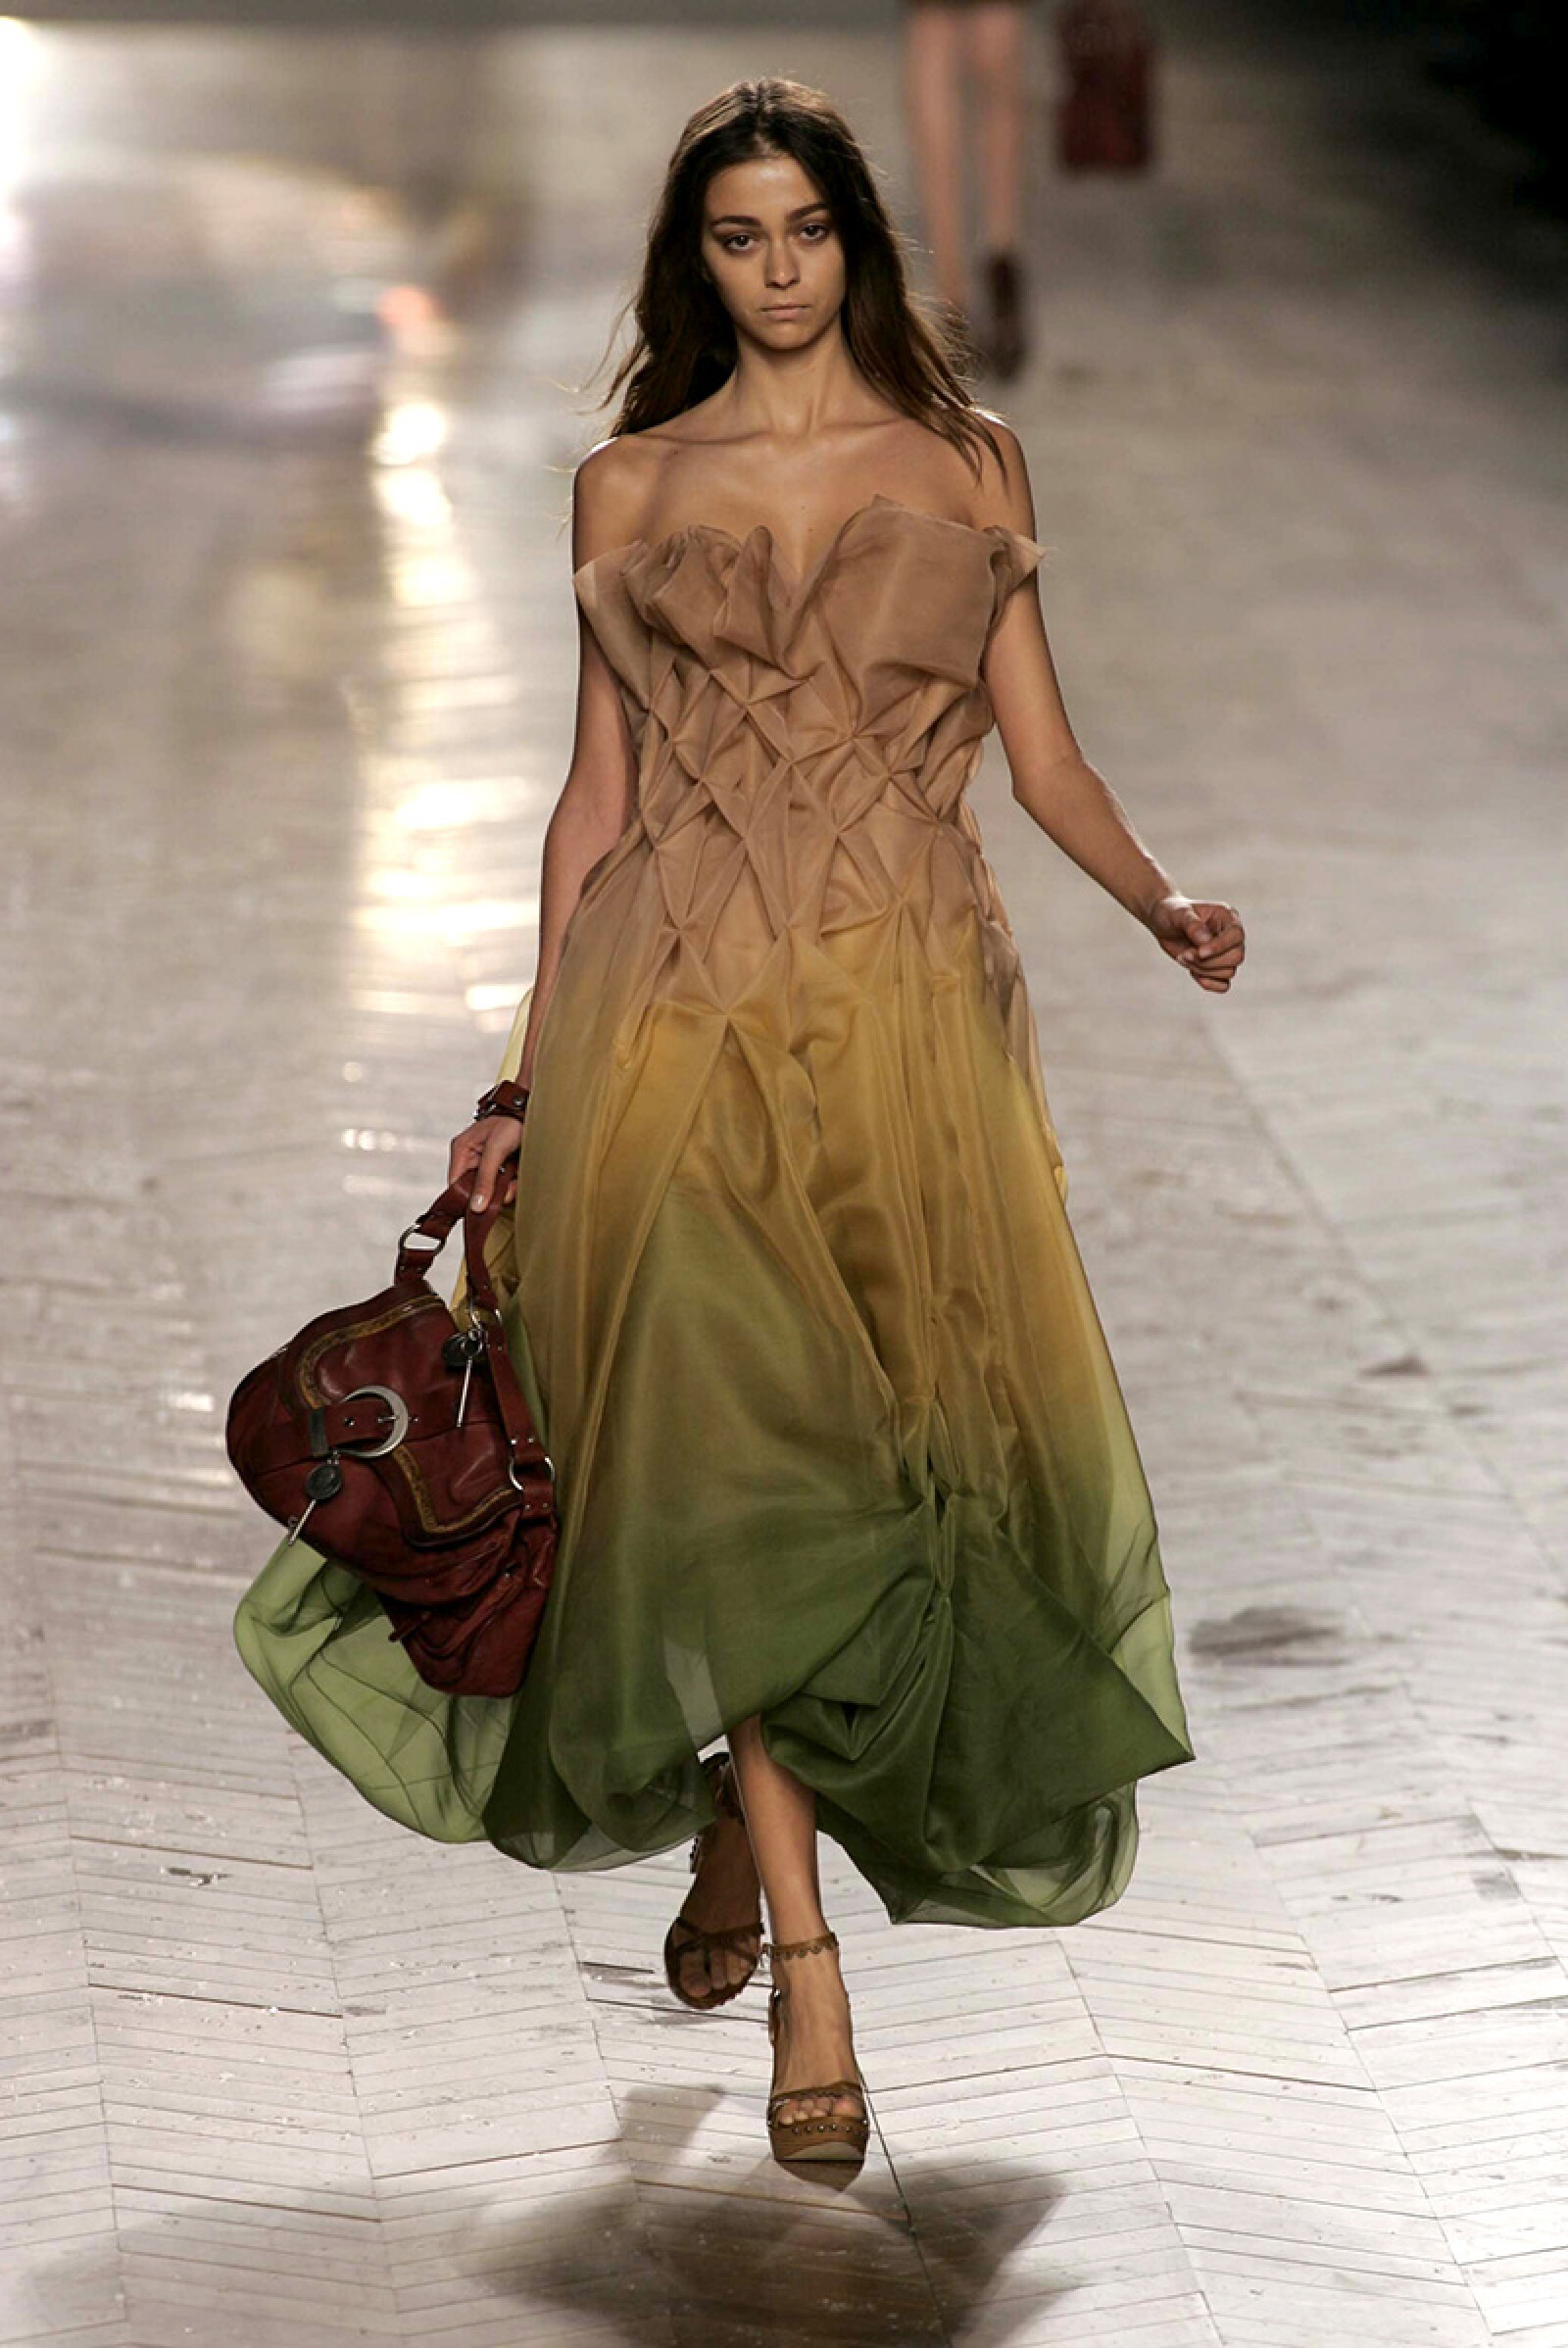 CHRISTIAN DIOR SHOW FOR SPRING / SUMMER 2006, PARIS FASHION WEEK, PARIS, FRANCE - OCT 2005